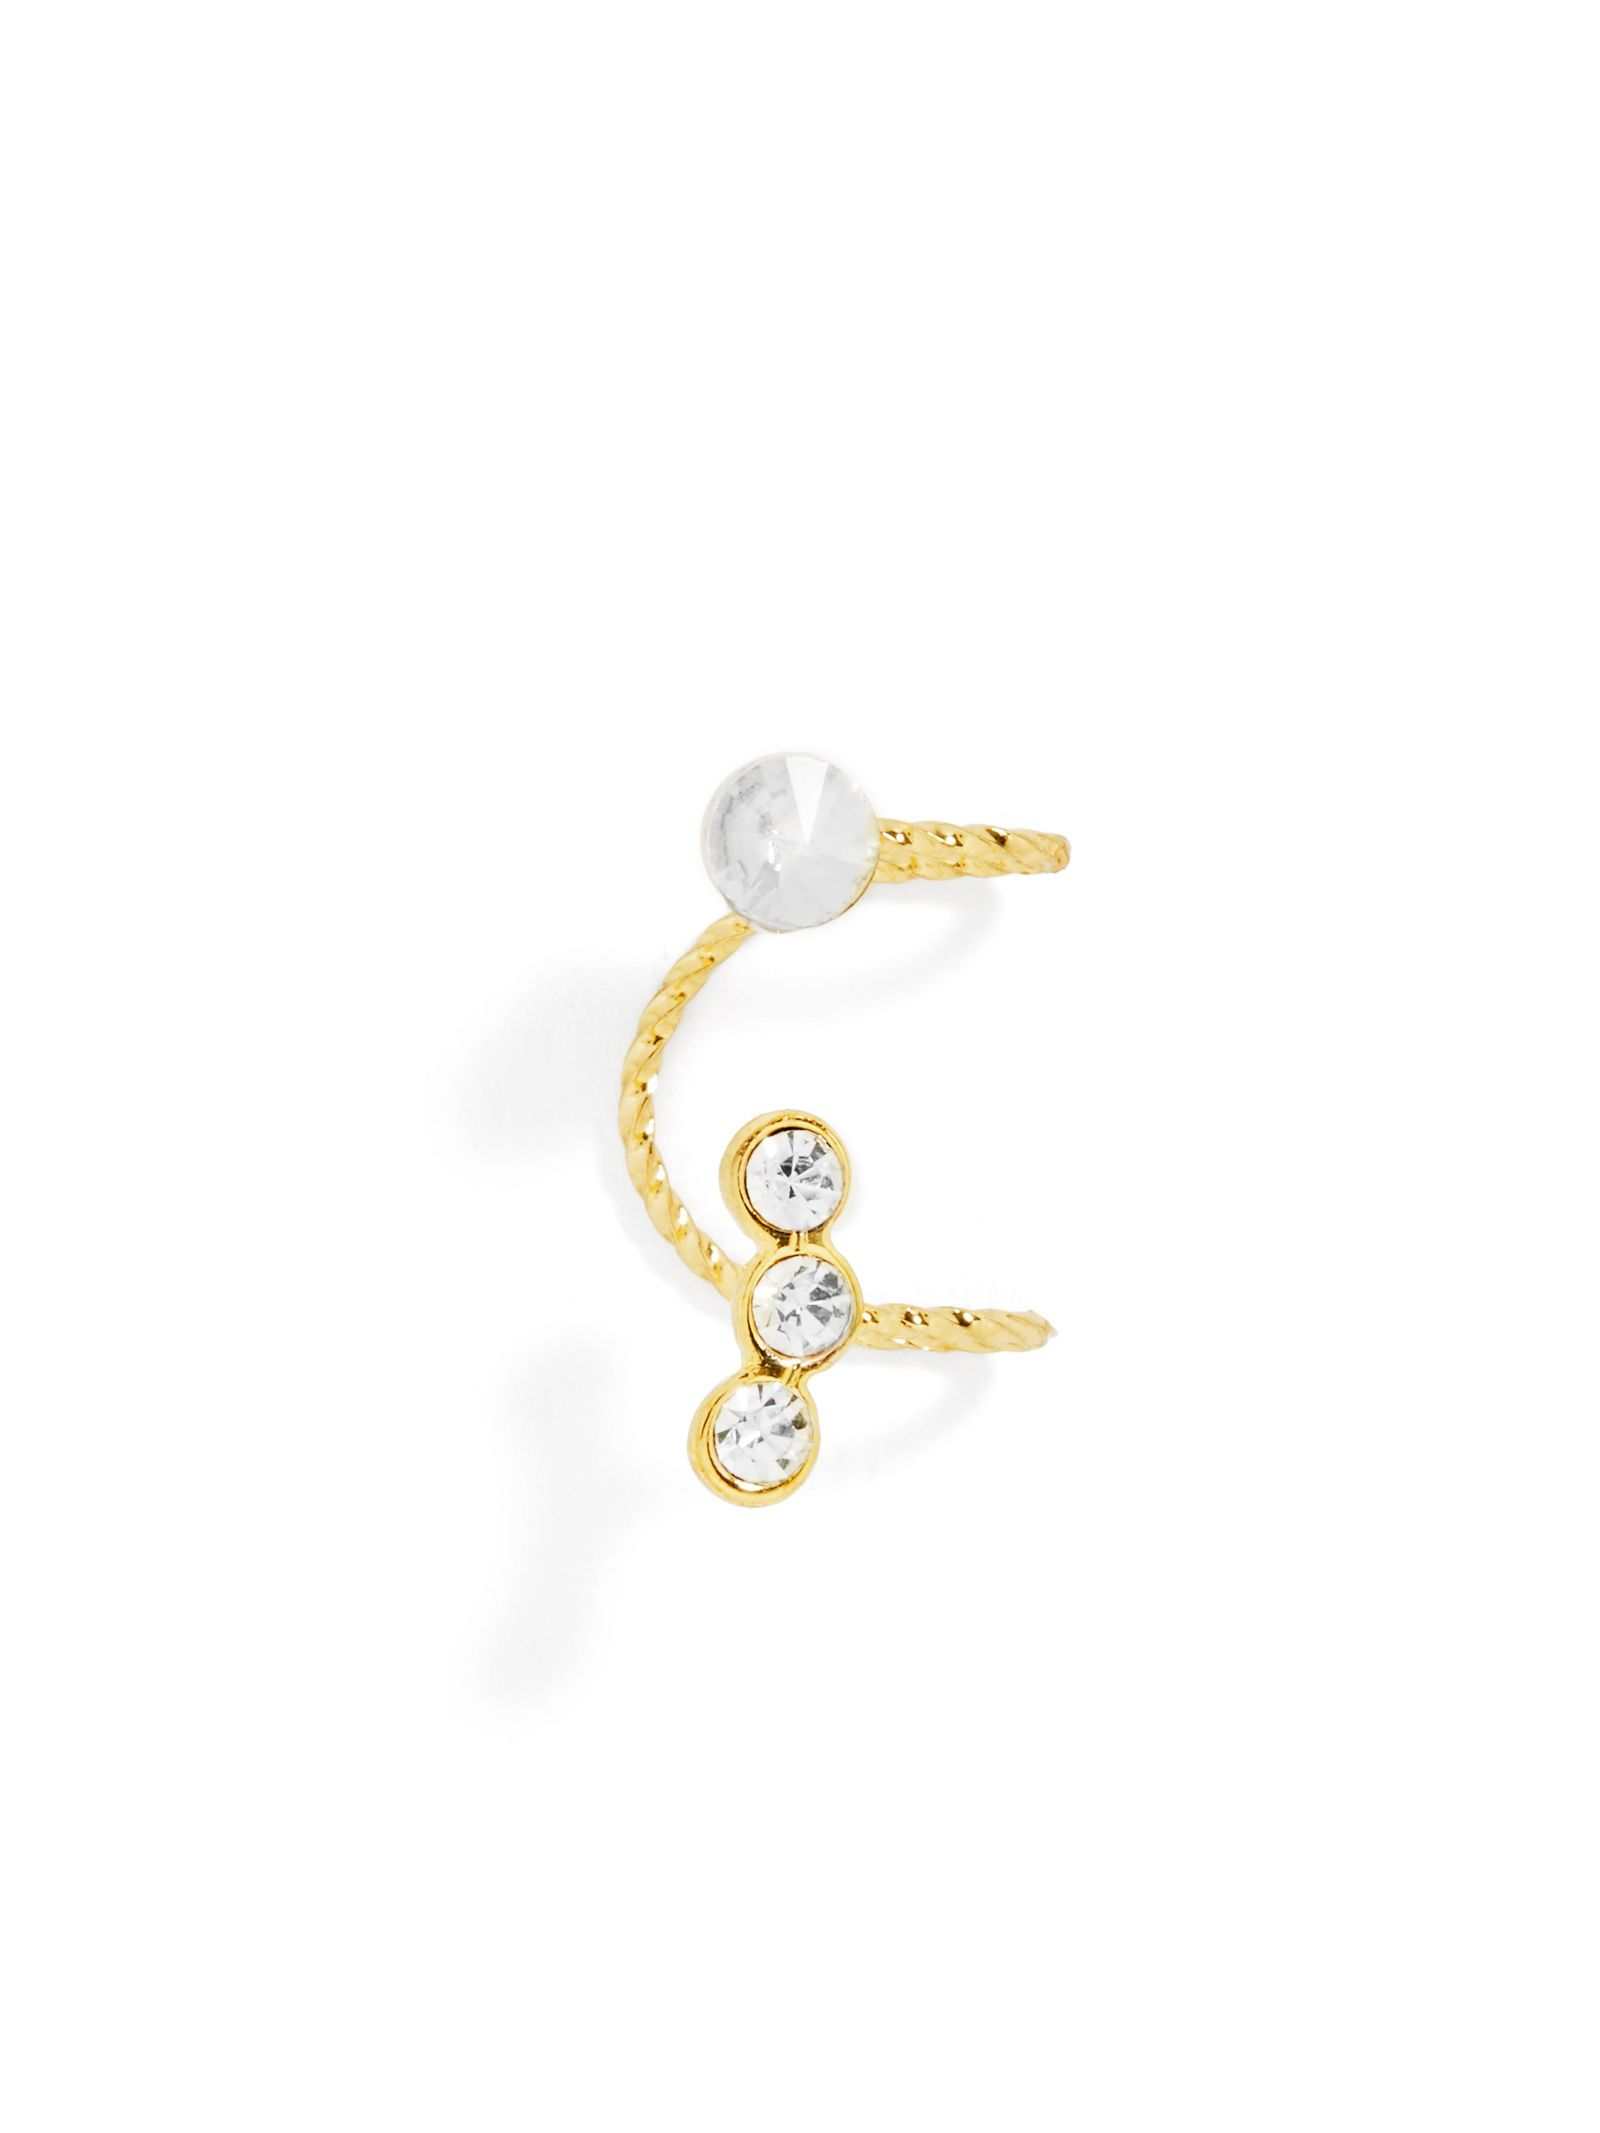 Bump above nose piercing  Crystal Ear Cuff  Delicate and Crystals